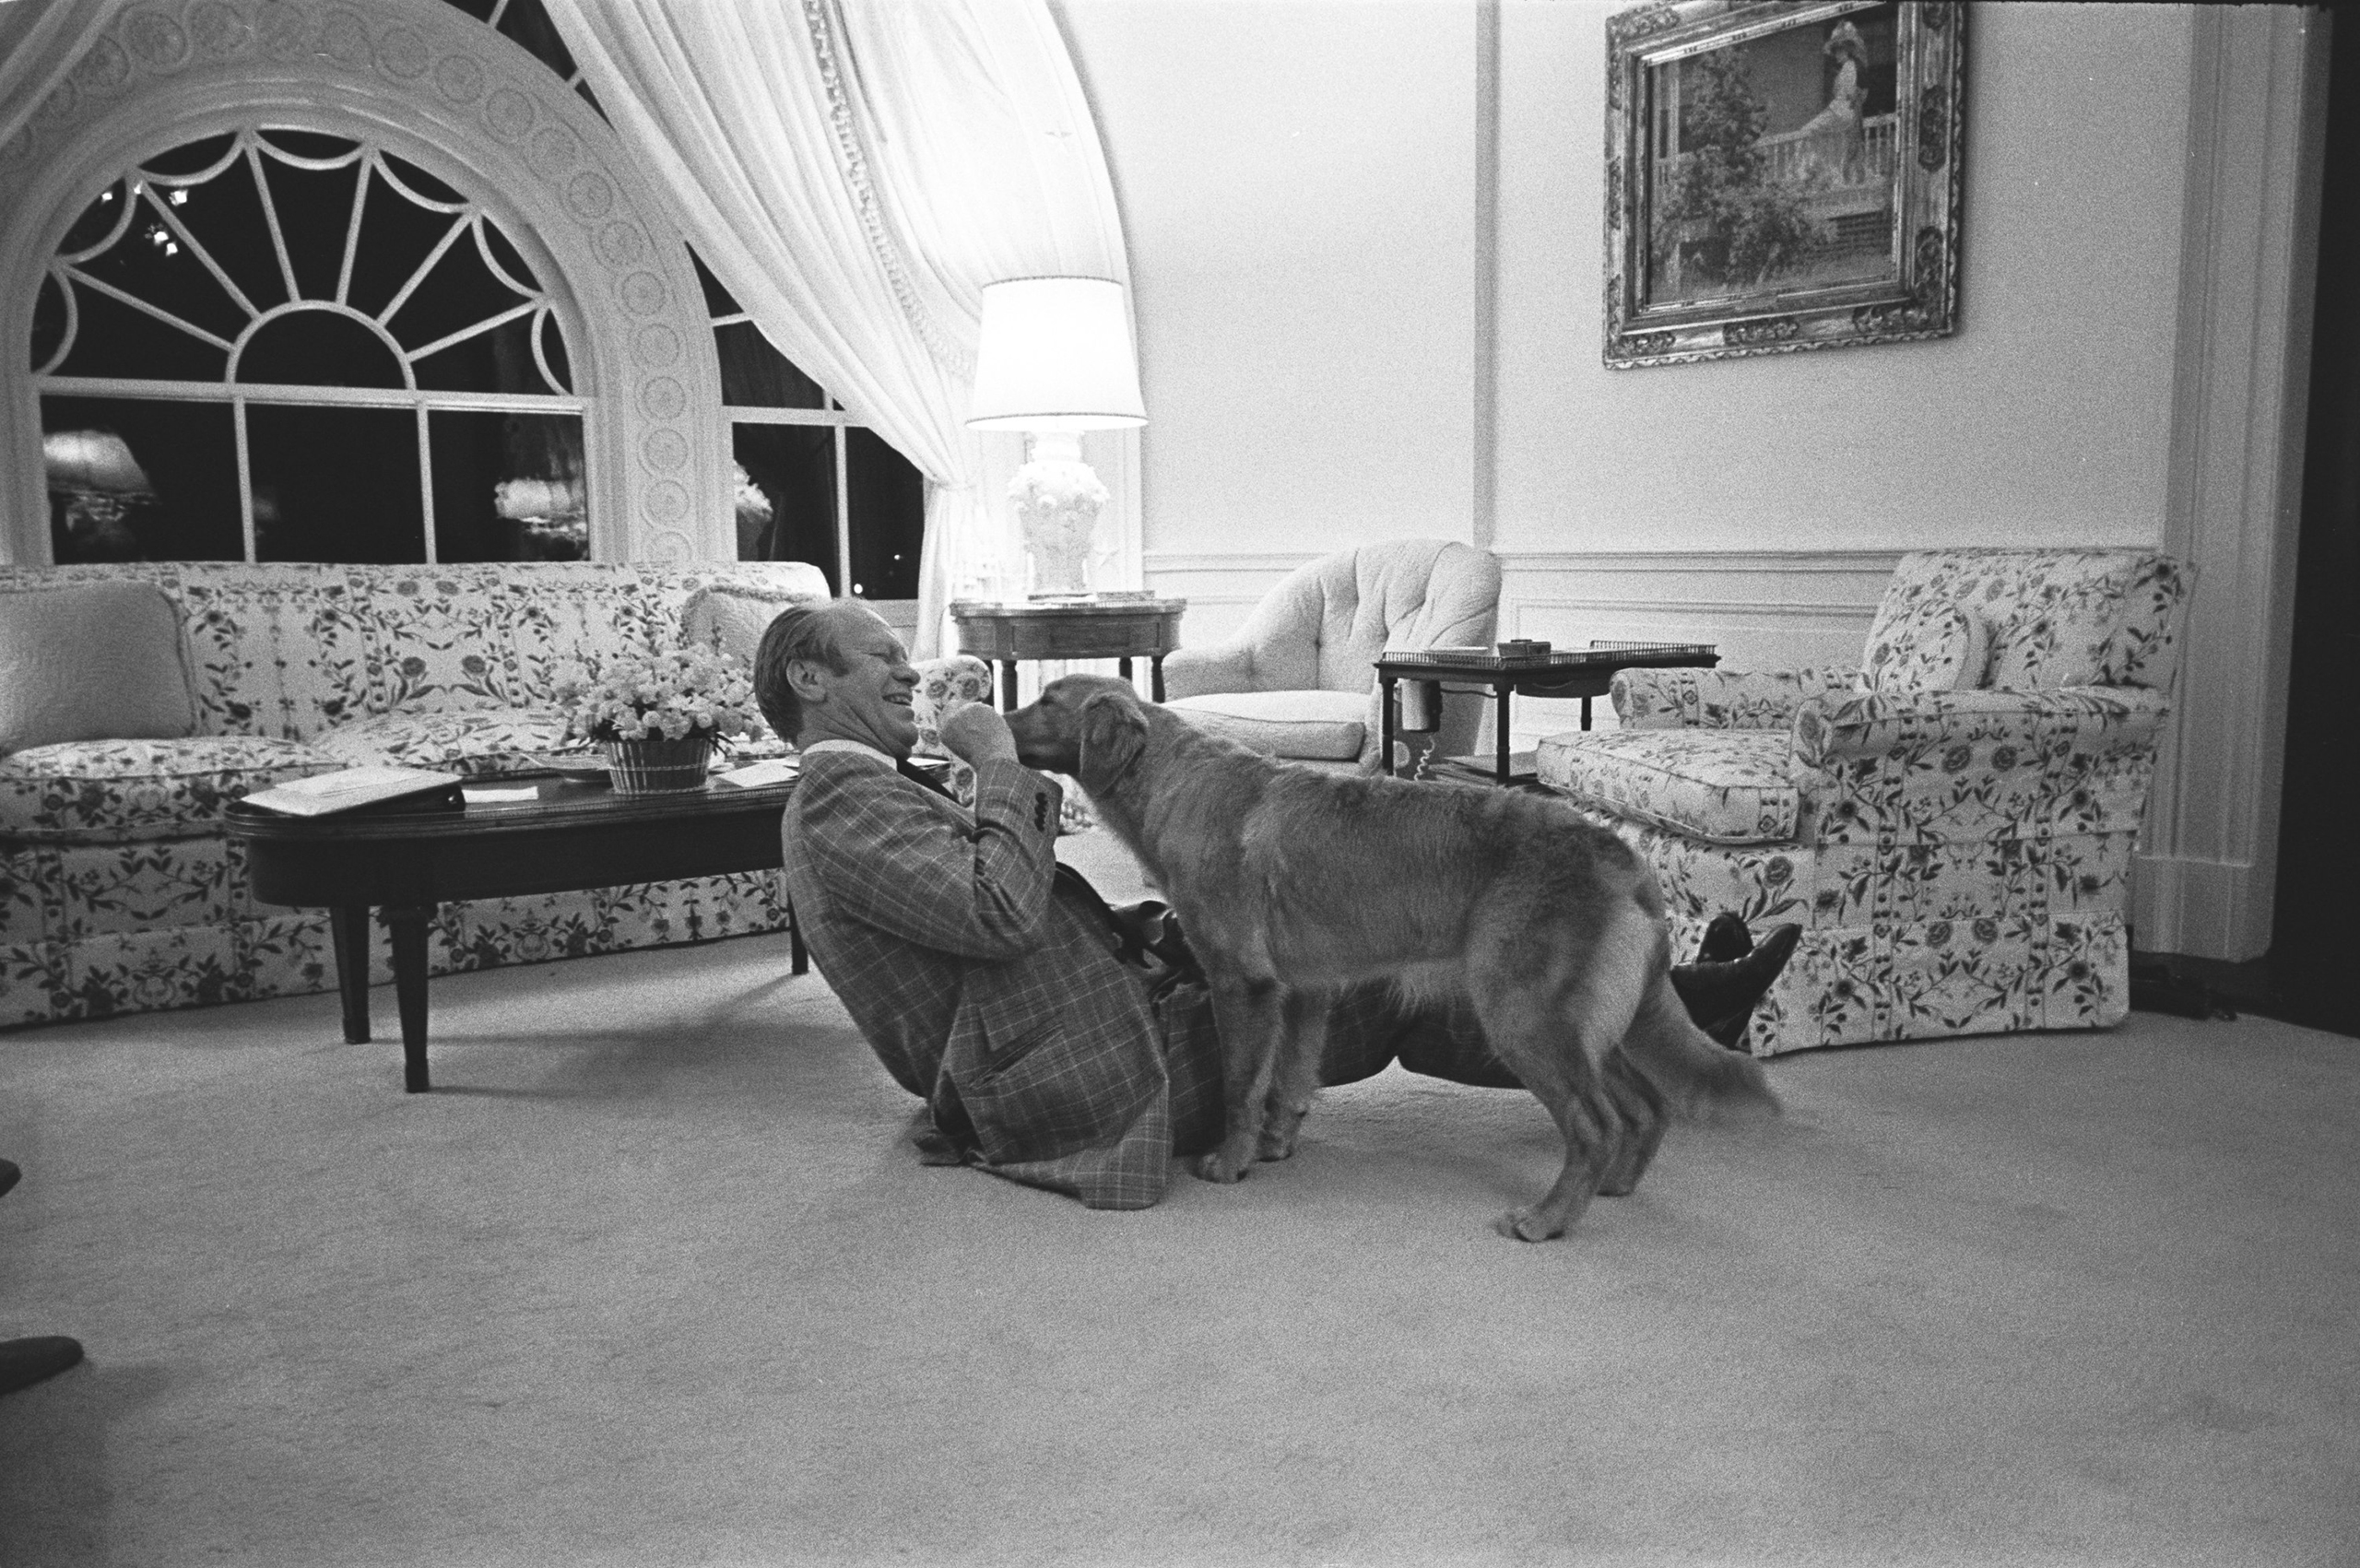 Gerald R. Ford wrestles with his new pet Golden Retriever, which the Fords named Liberty, in the second story family room of the White House Executive Residence on Feb. 2, 1975. Liberty was a gift from Ford's daughter, Susan, and his personal photographer, David Hume Kennerly.